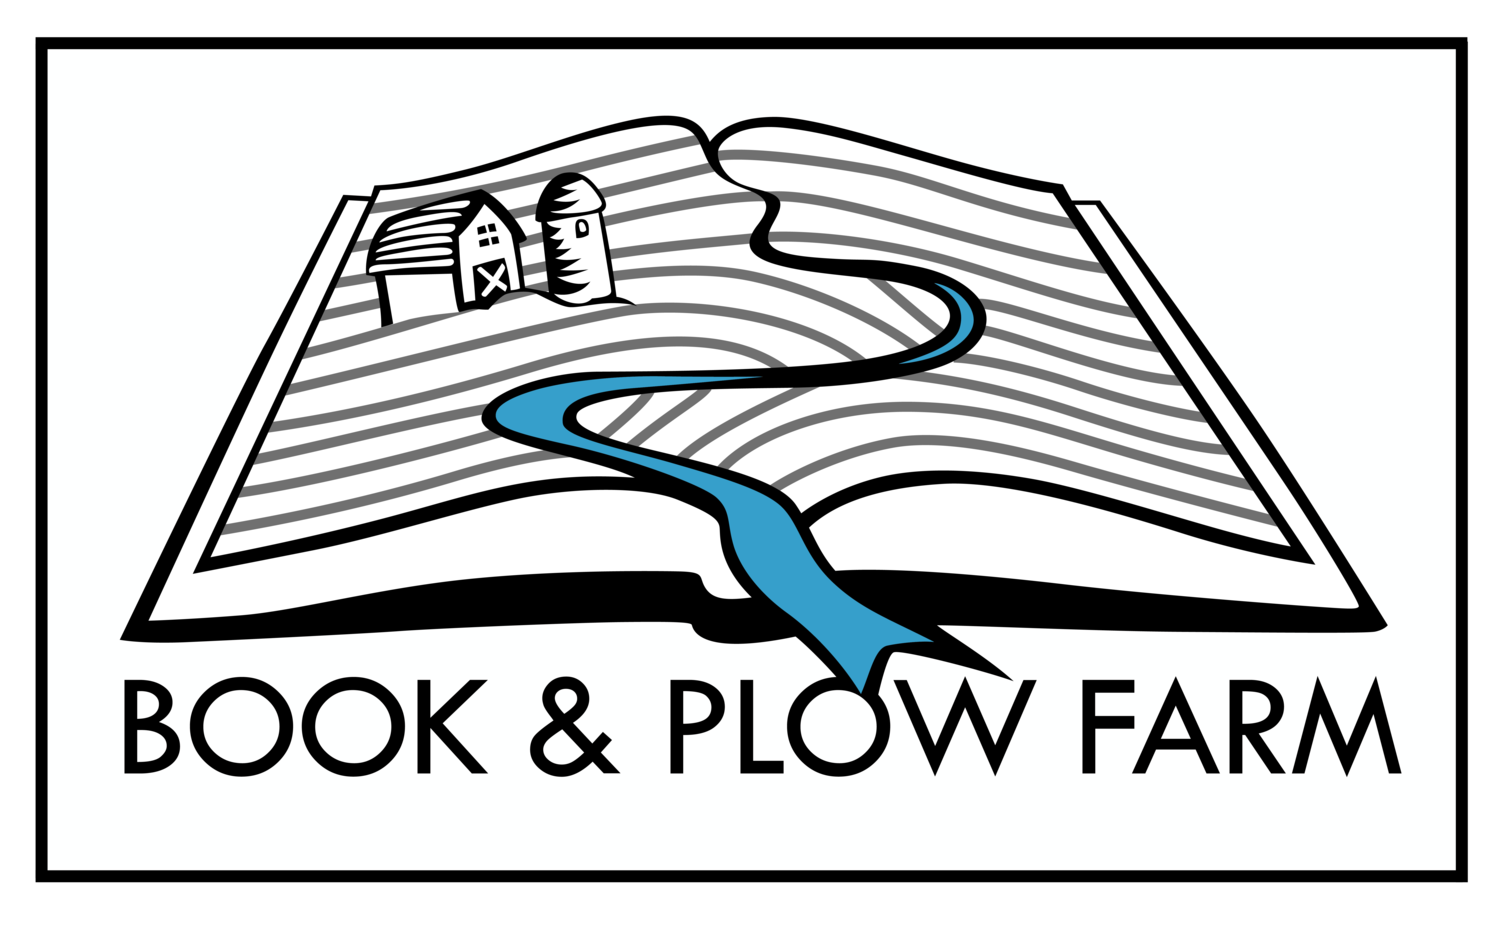 Book & Plow Farm